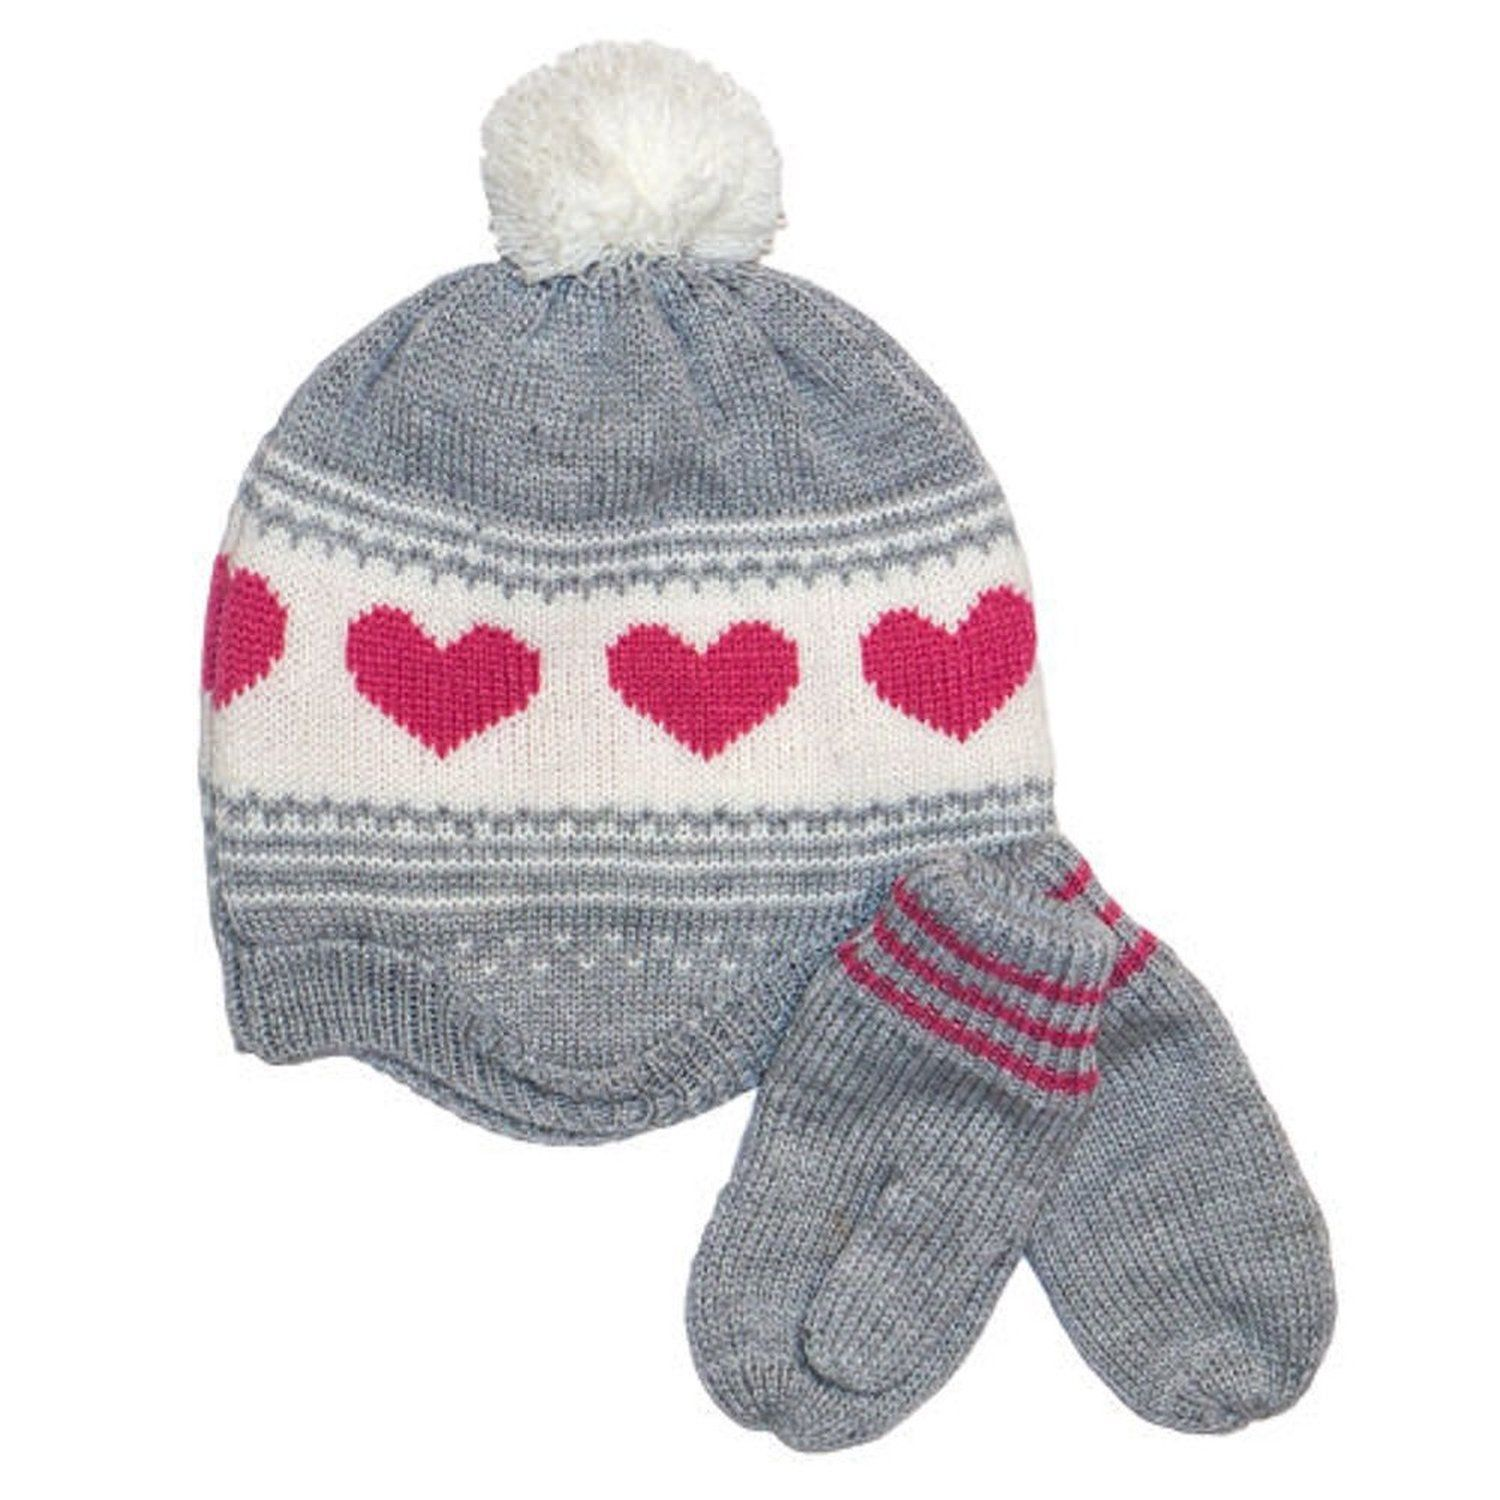 814736f48 Carters Little Girls Hat and Mitten Set and 50 similar items. S l1600